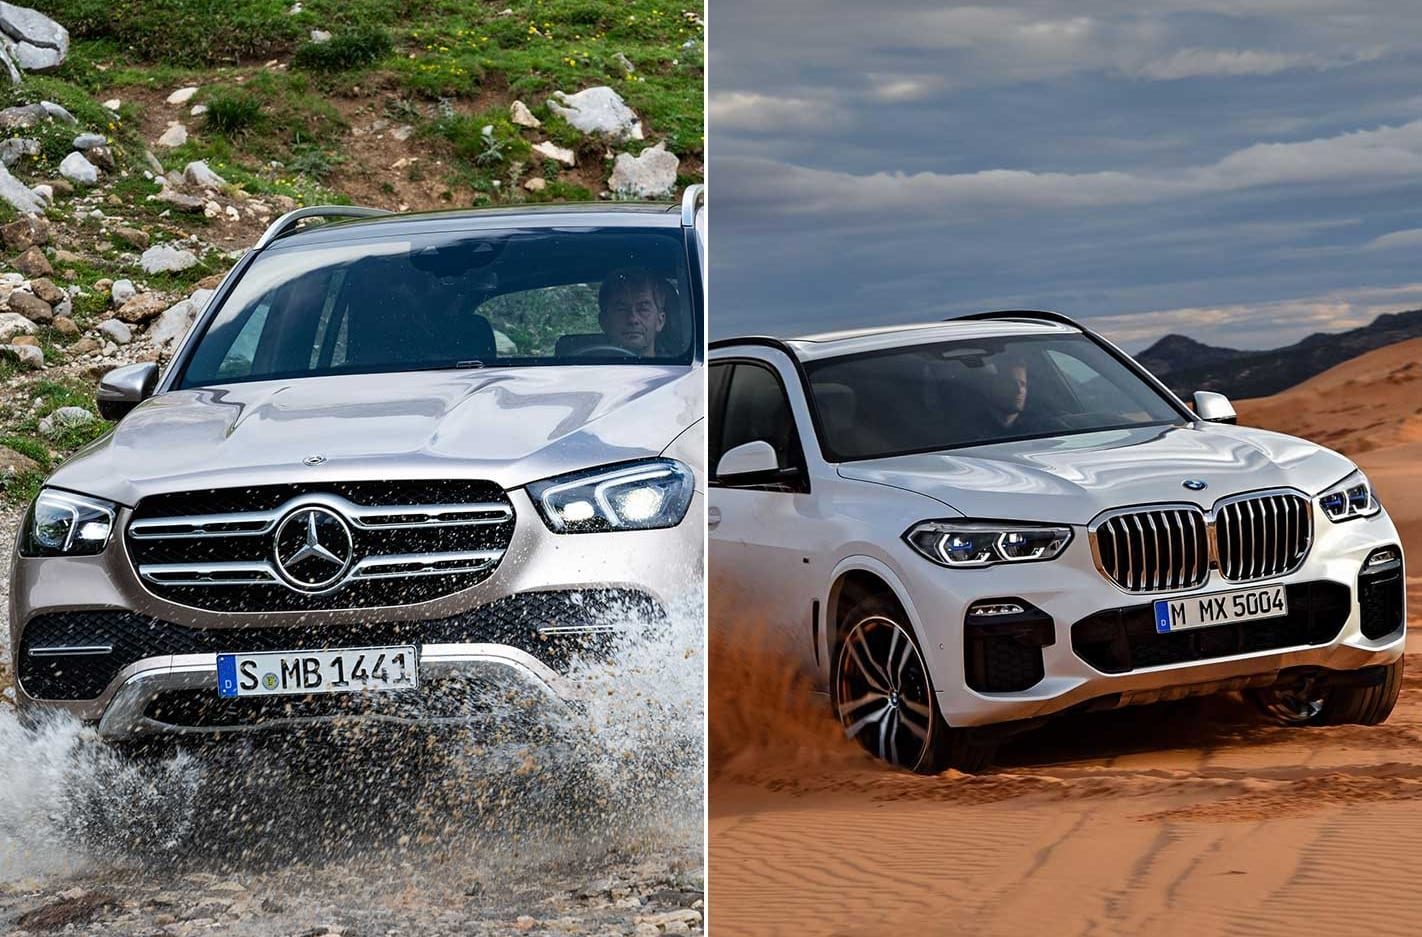 German luxury SUVs think about getting dirty